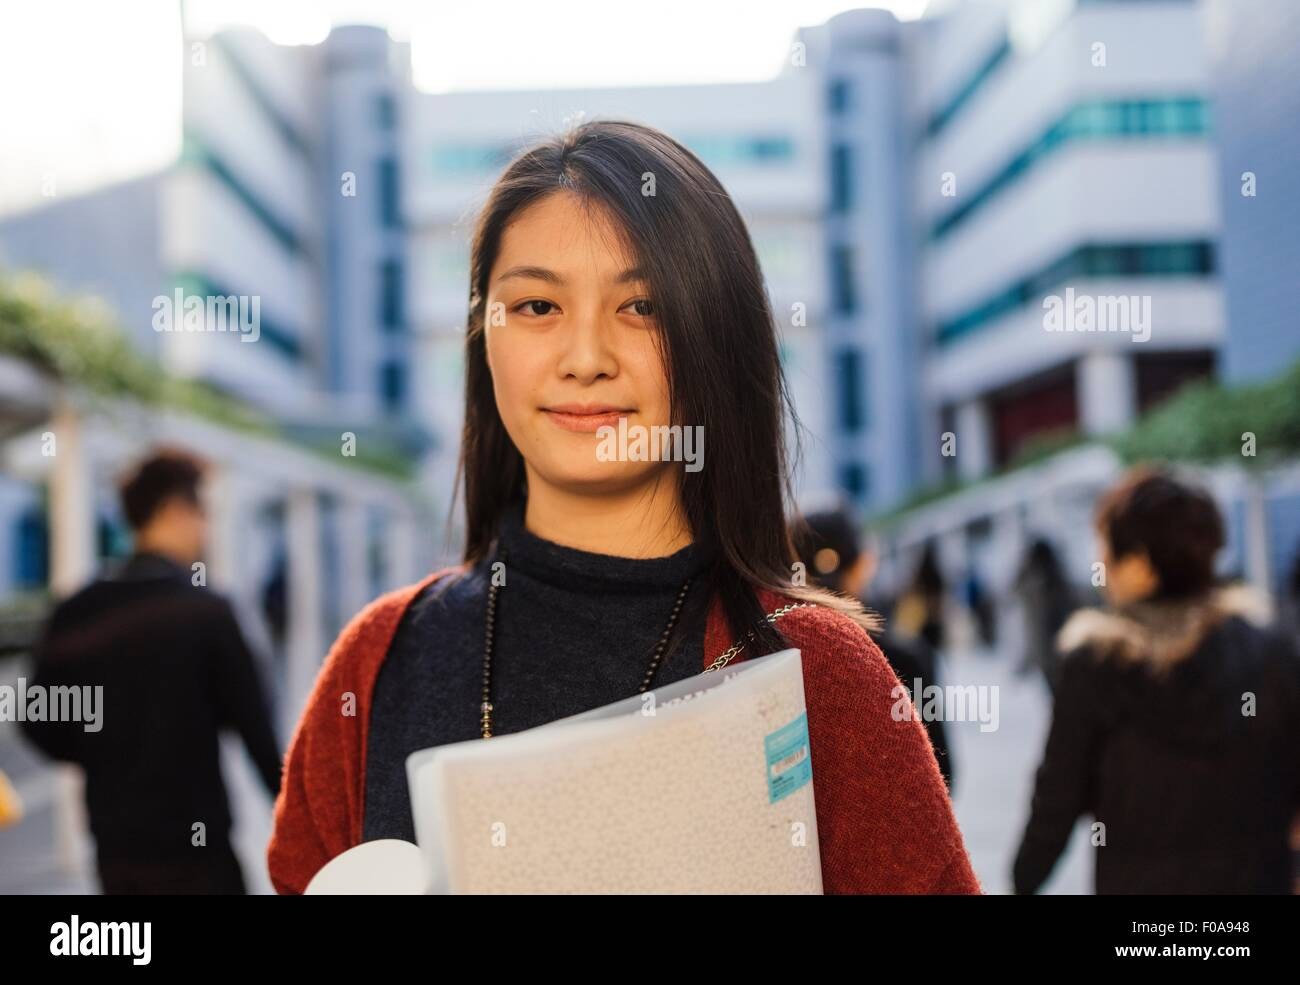 Portrait of young woman holding notebook looking at camera - Stock Image